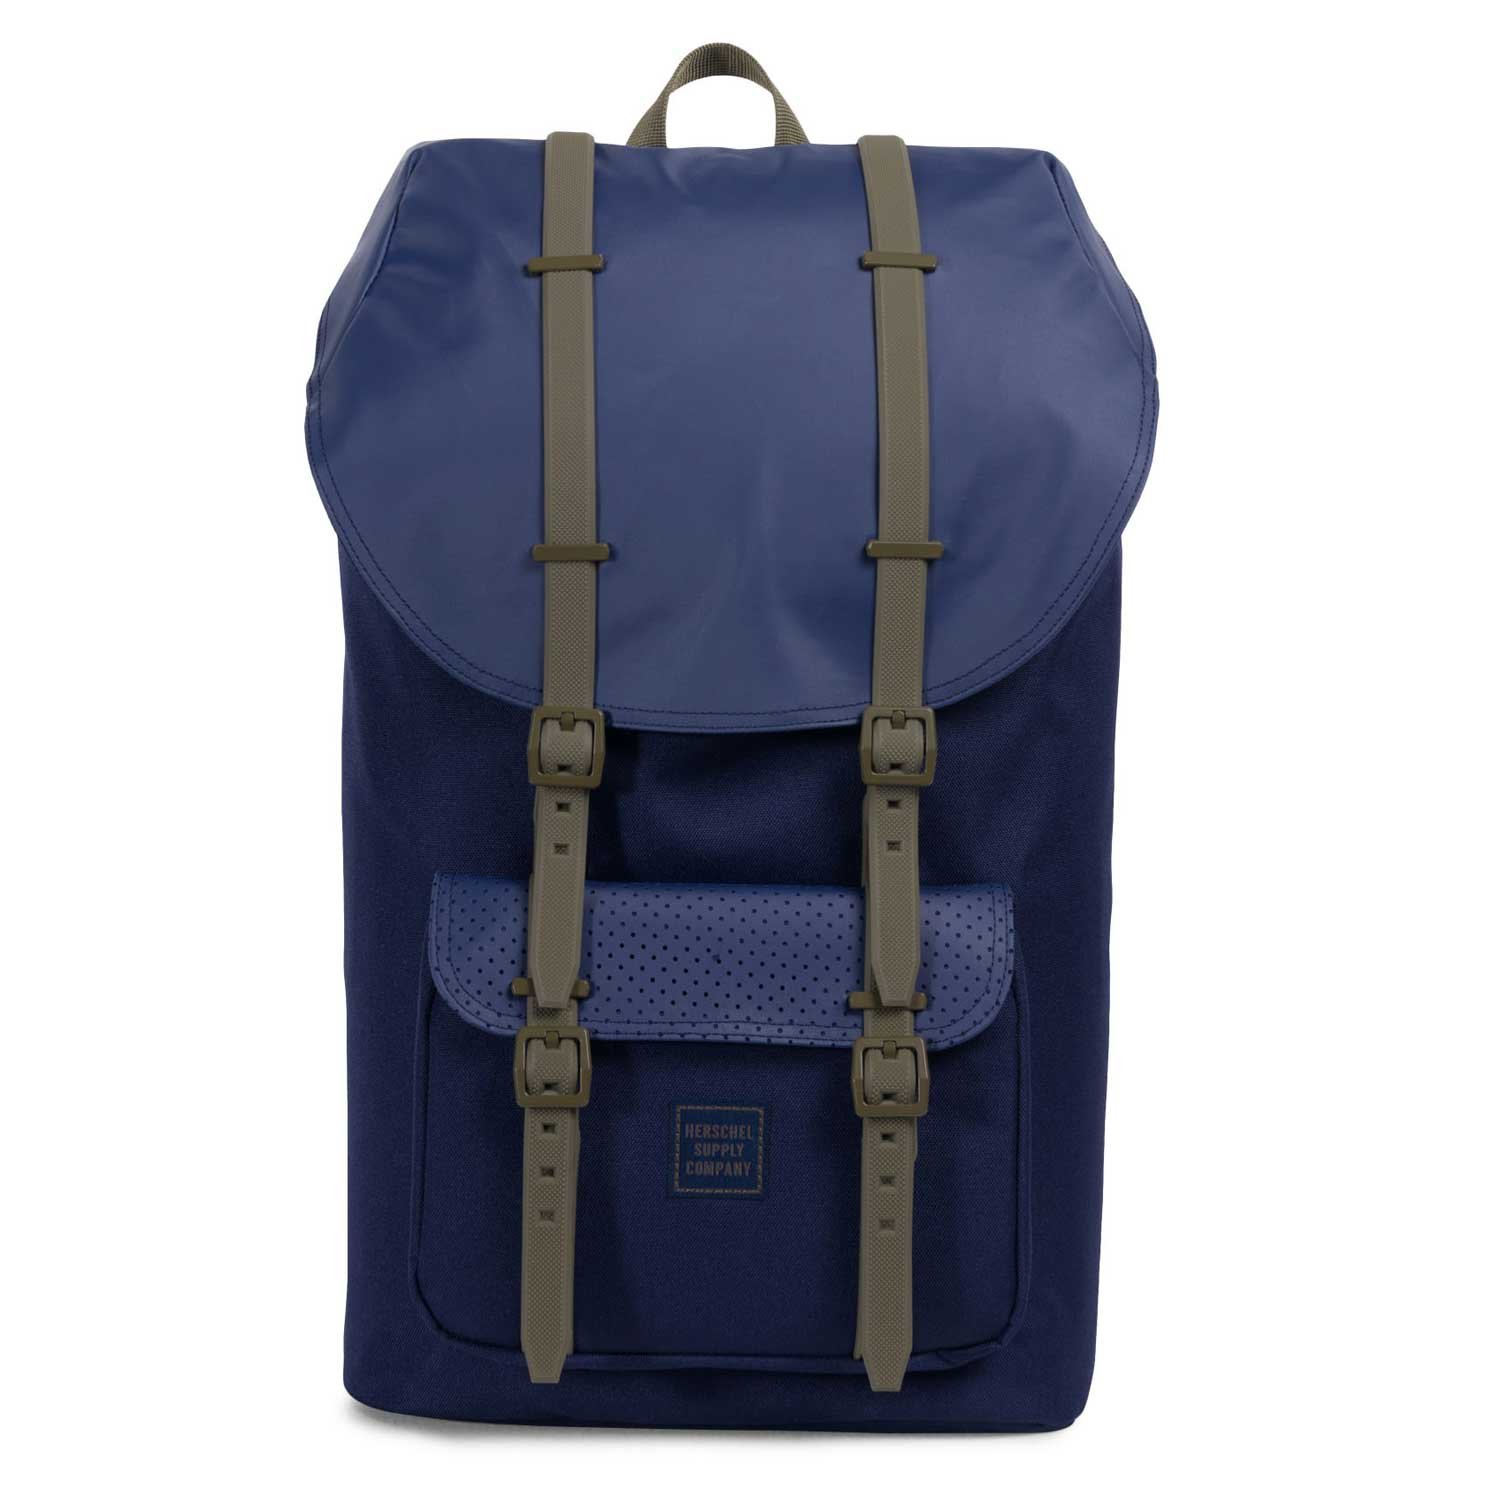 Herschel Little America Backpack Peacoat 10014-01829-OS (SIZE: One Size)